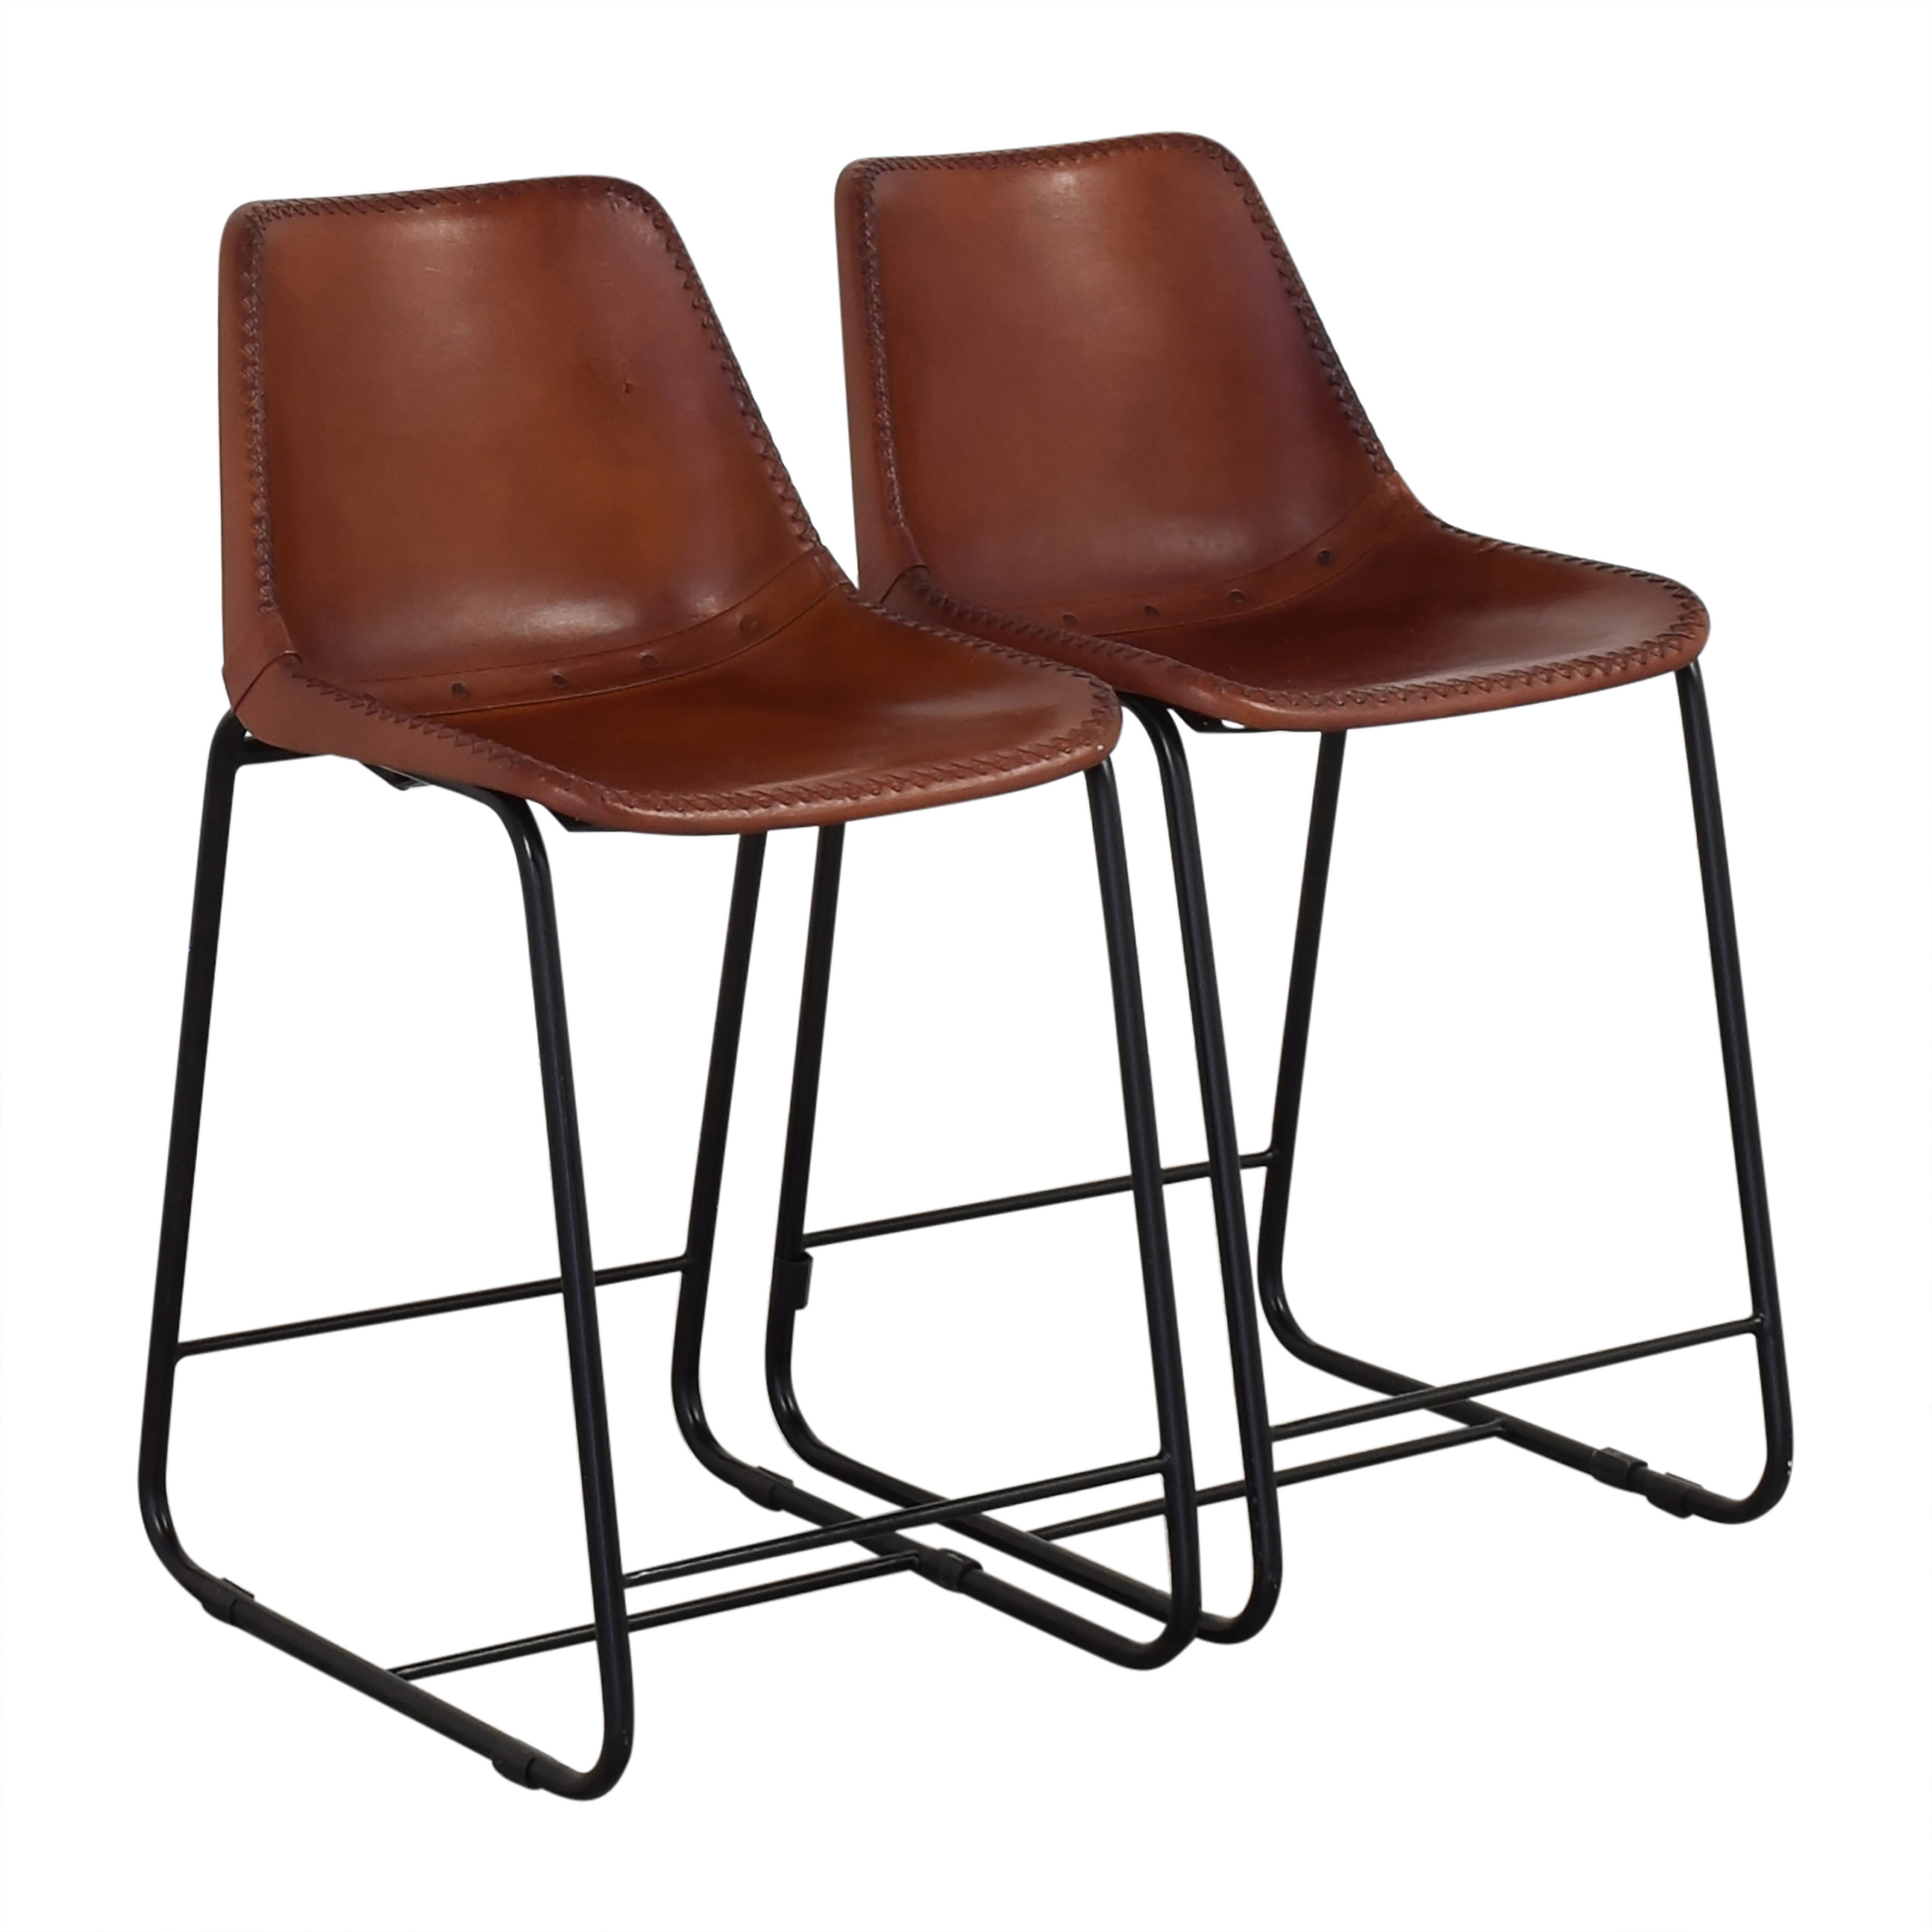 CB2 CB2 Roadhouse Counter Stools Chairs